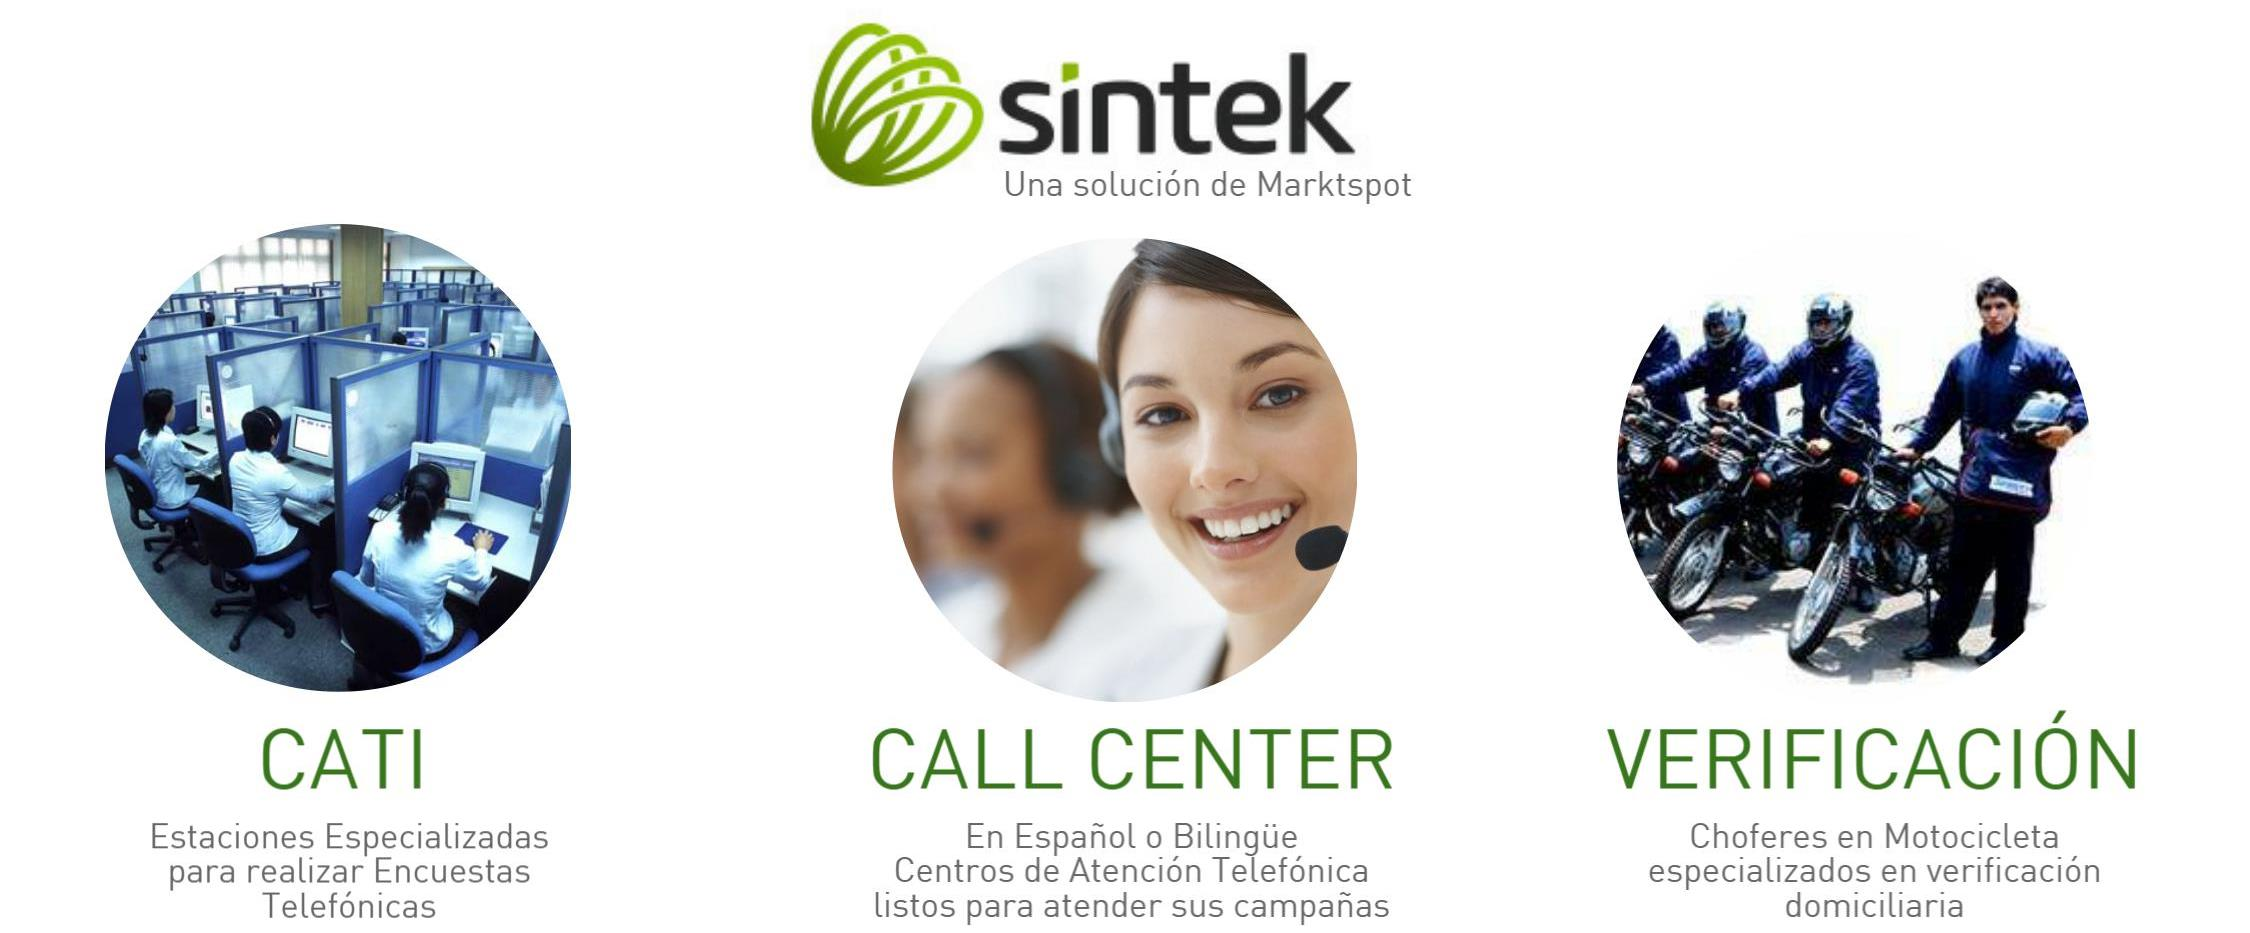 Sintek, servicios de call center